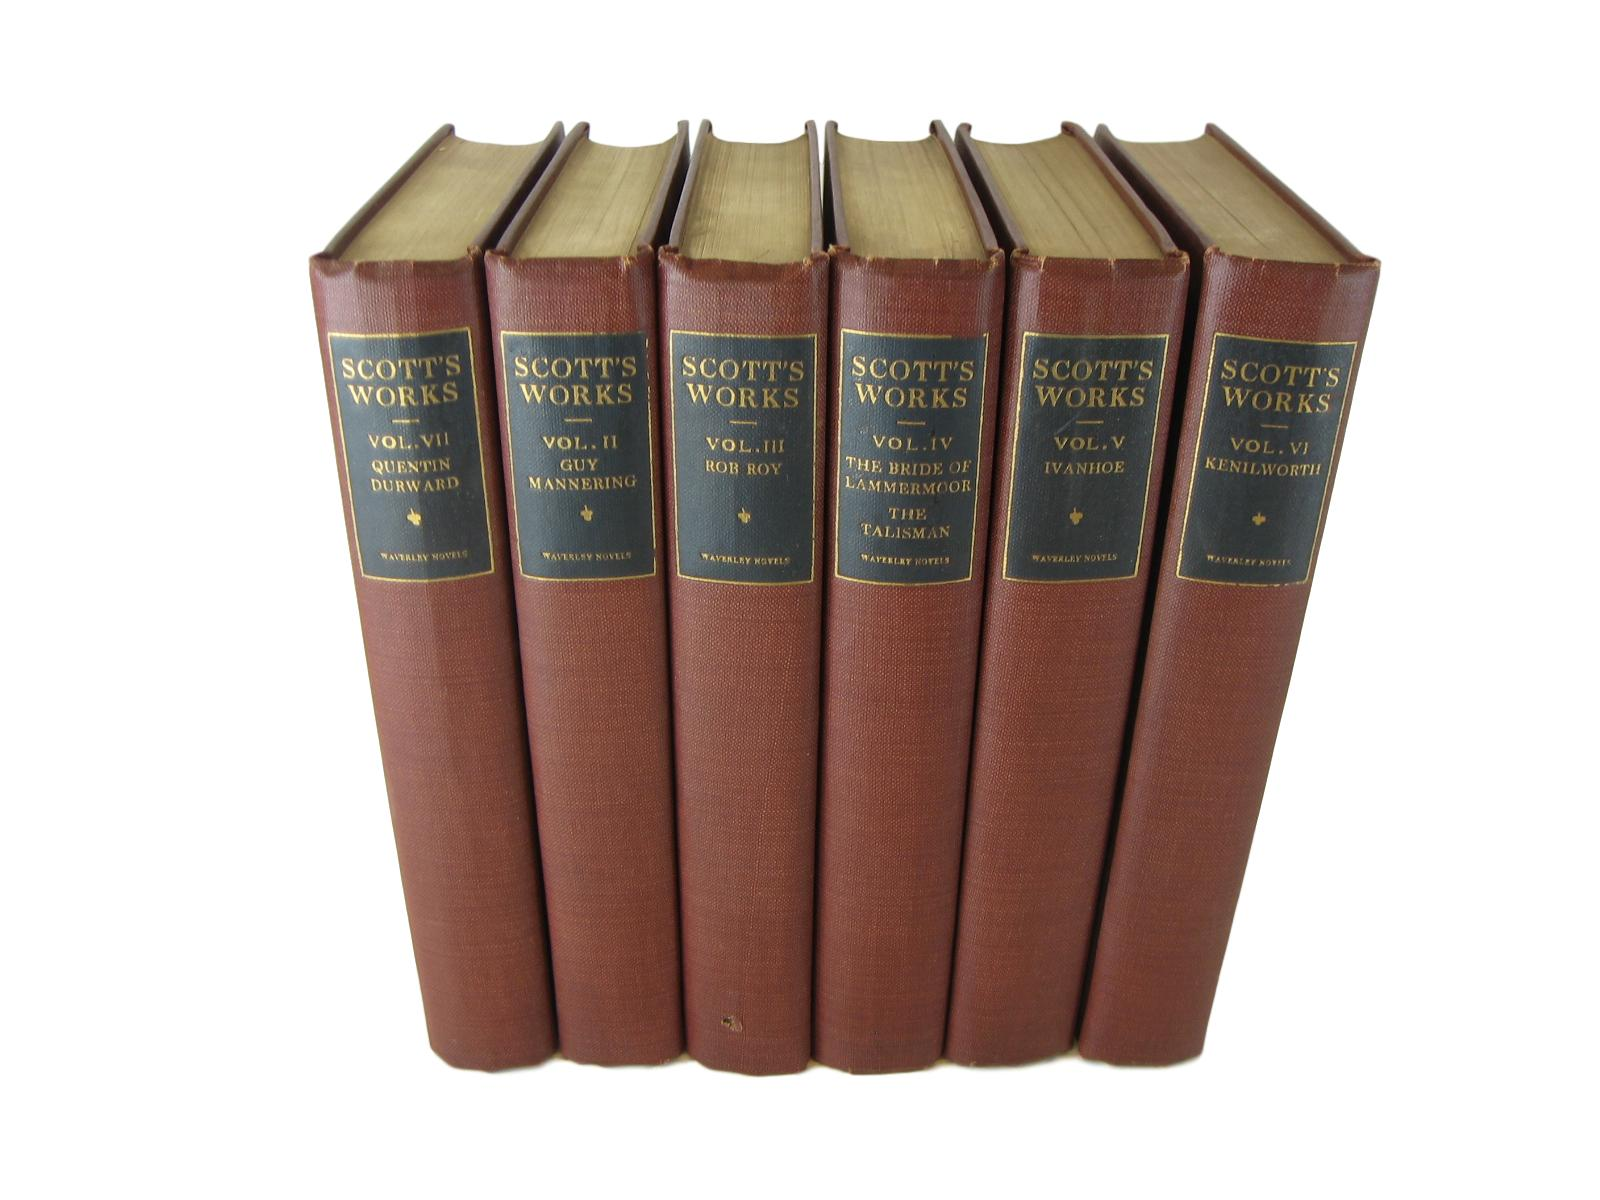 Vintage Book Stack of Waverley Novels, S/6, [decorative_books], Decades of Vintage